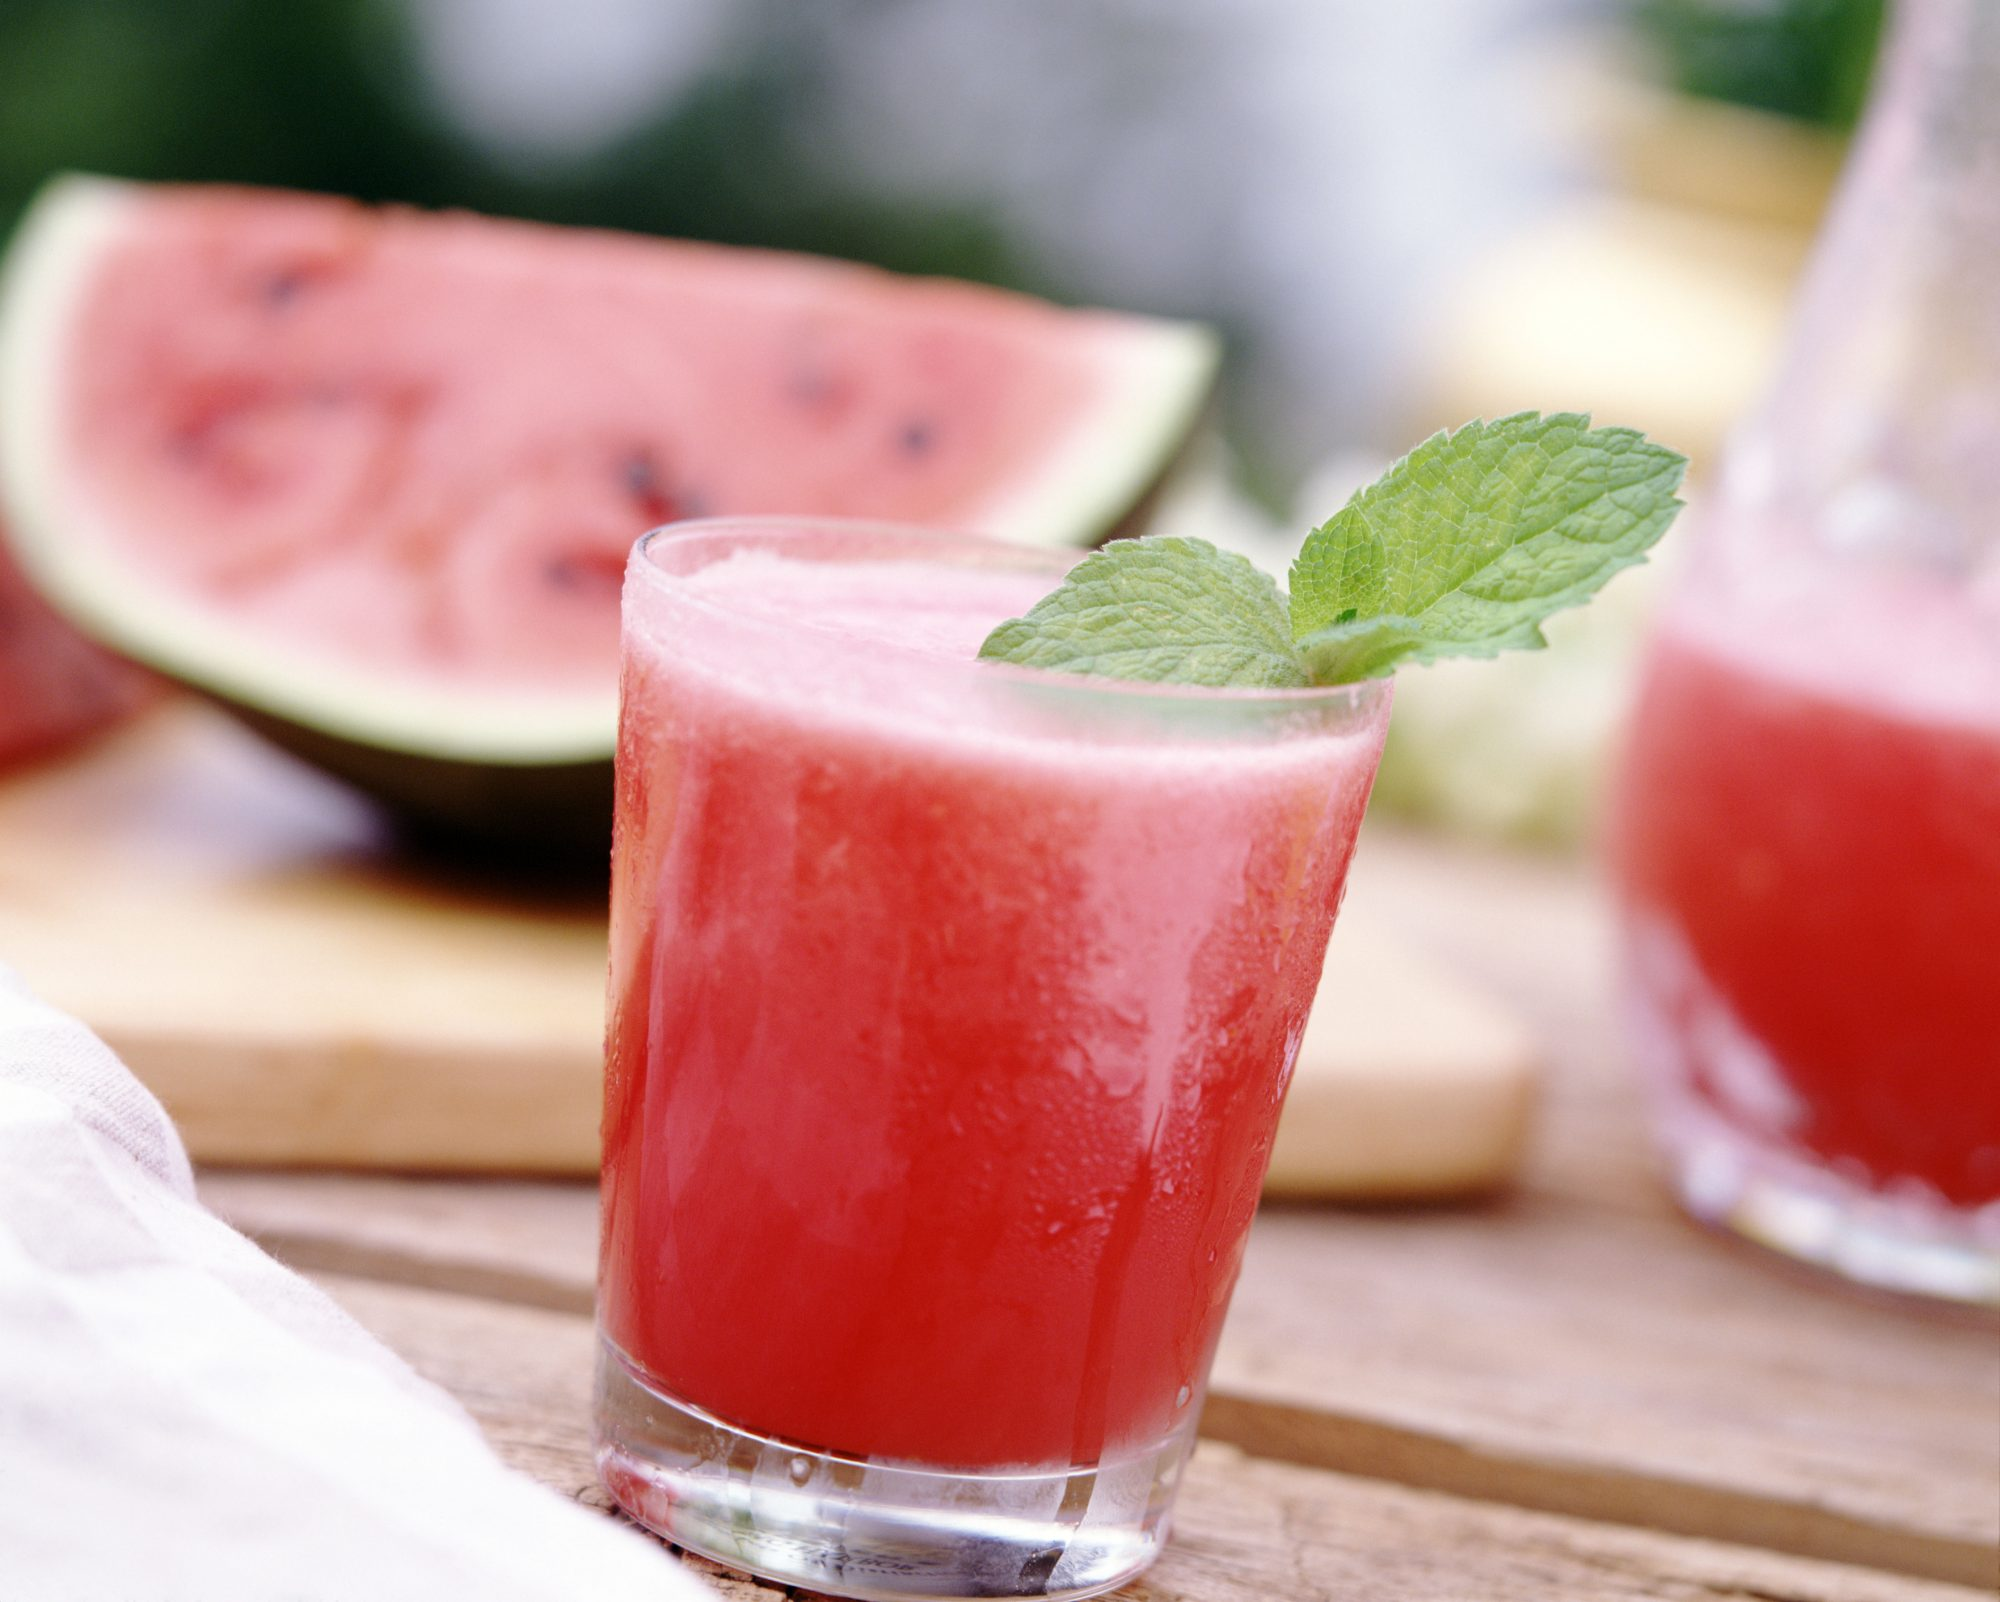 How to Make (and Use) Your Own Watermelon Juice